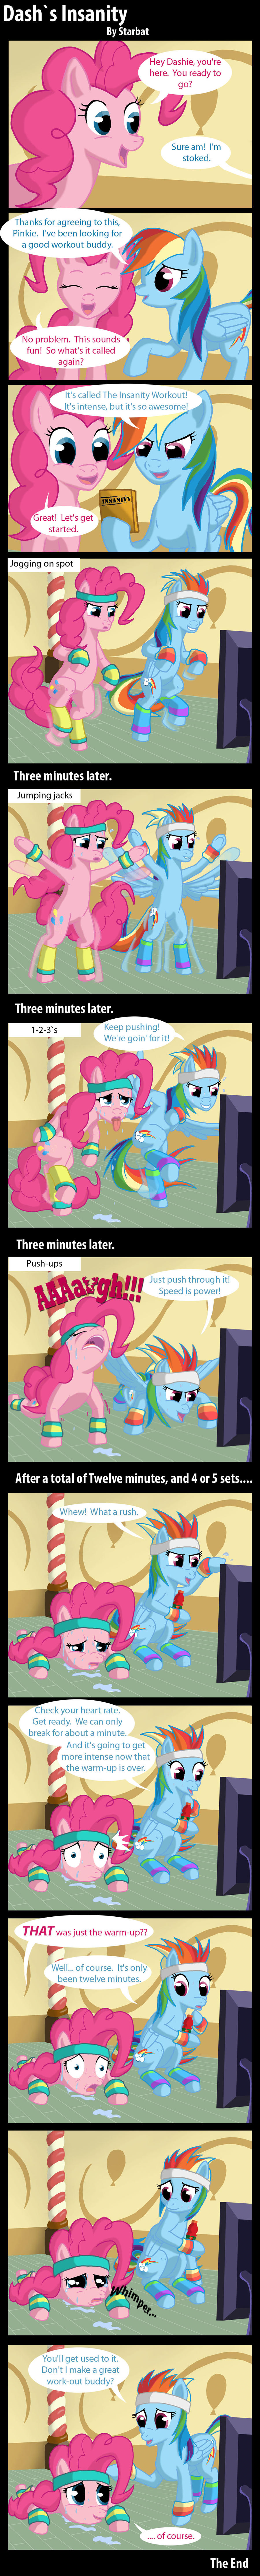 Dash's Insanity by Starbat